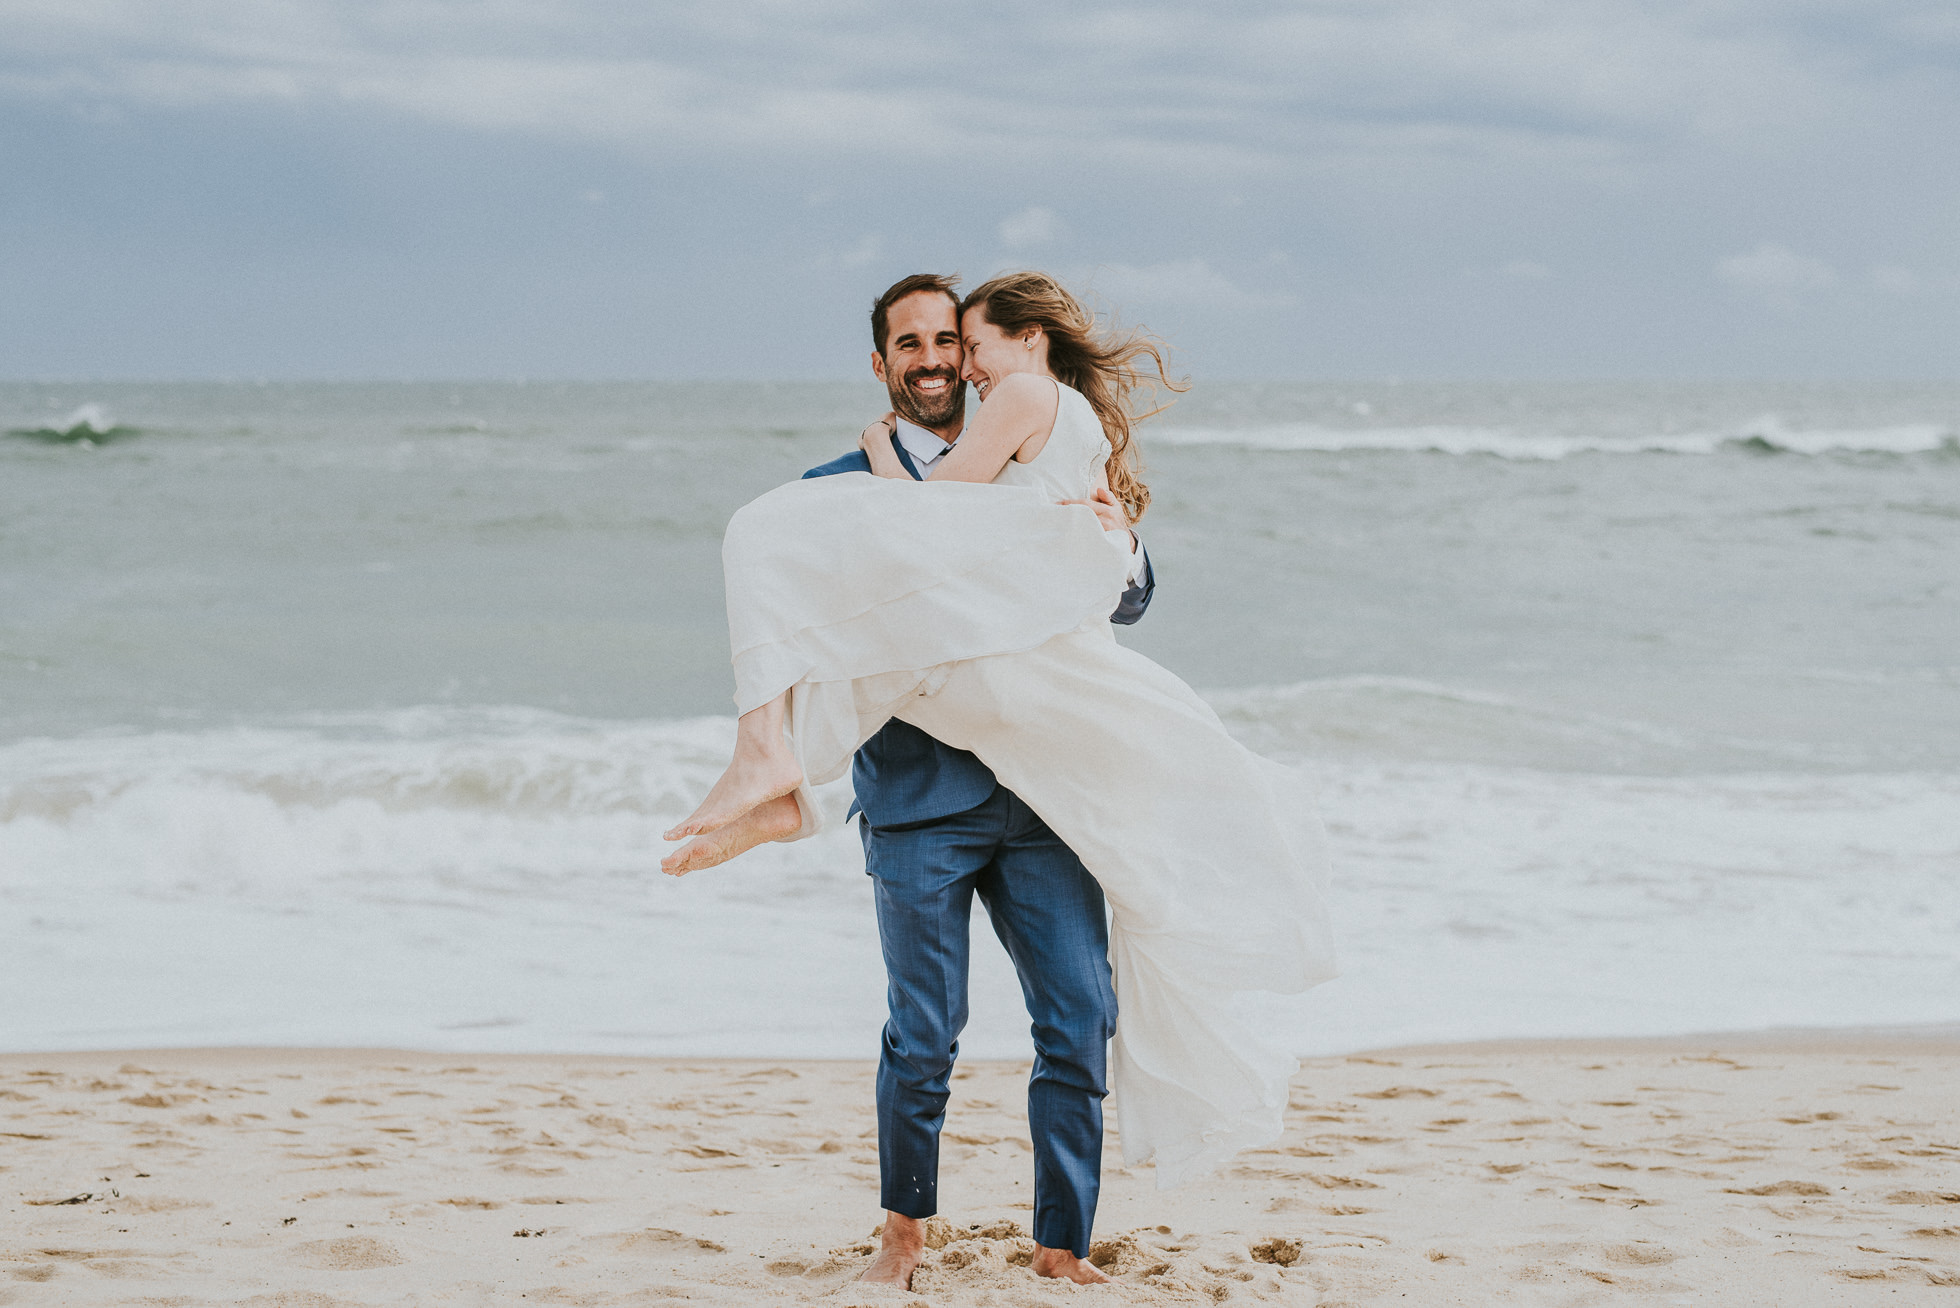 groom carrying bride at beach Montauk wedding photographed by Traverse the Tides